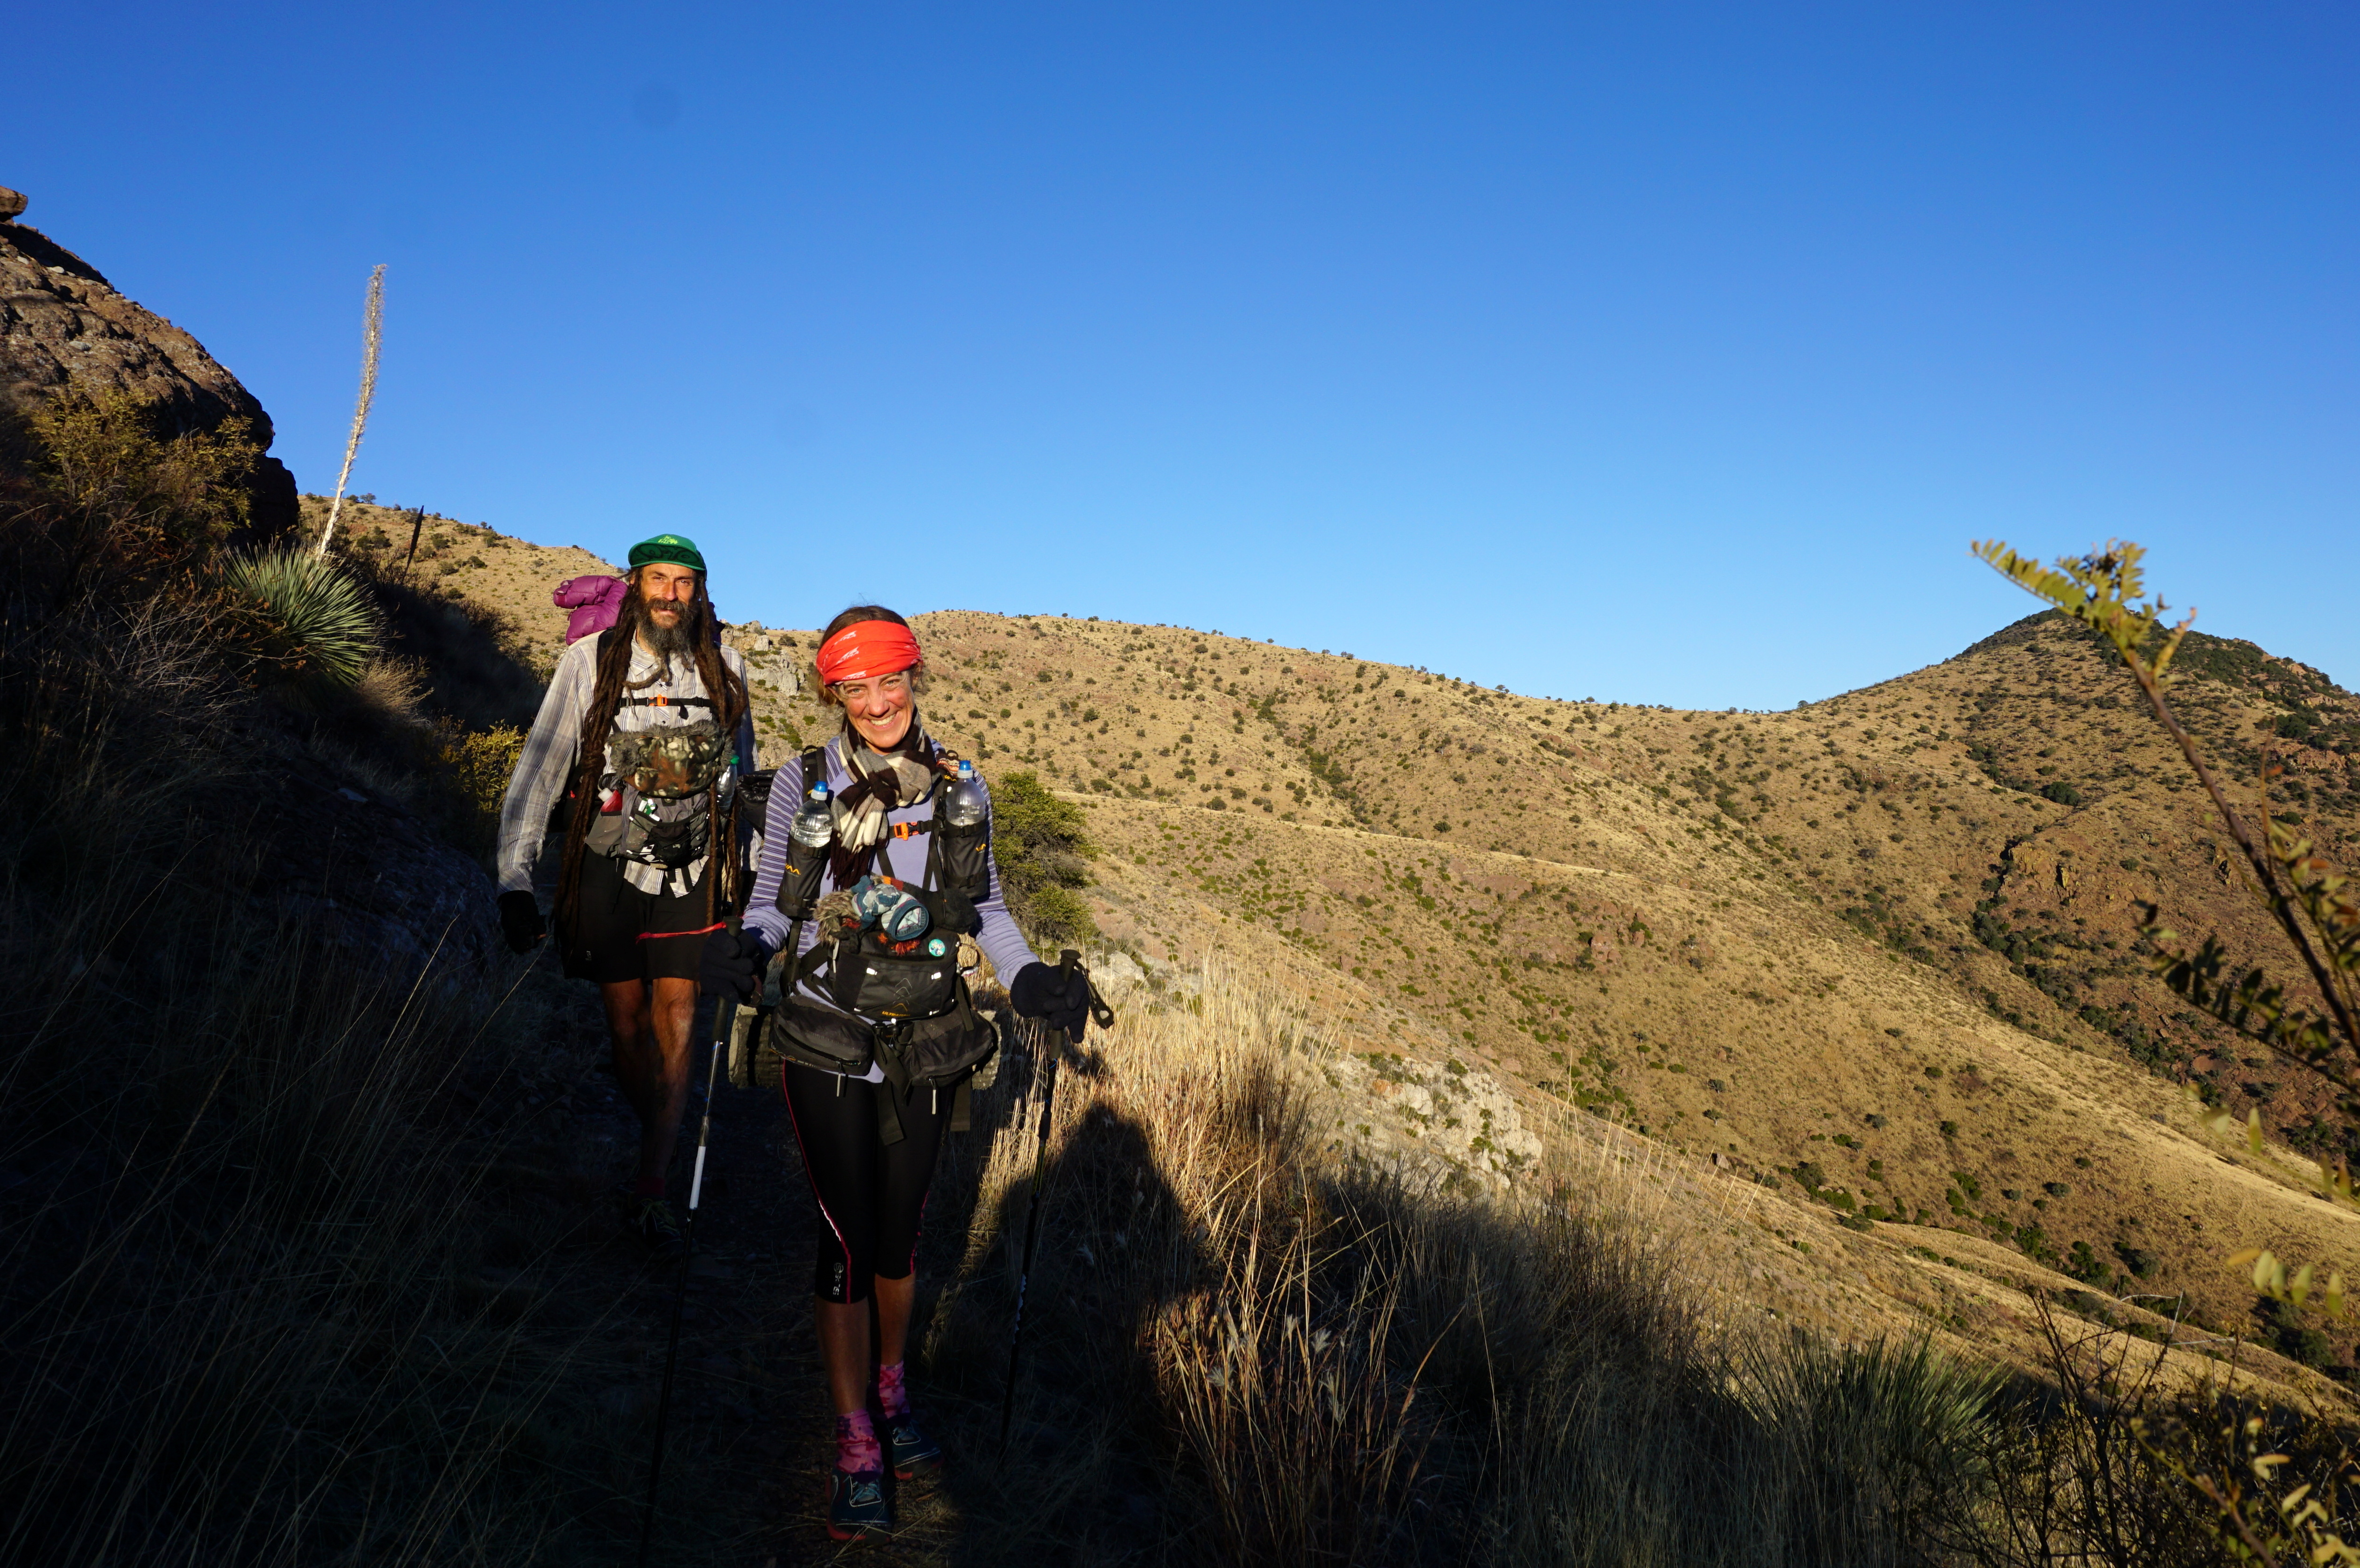 Kathy and Ras nearing the Mexican border